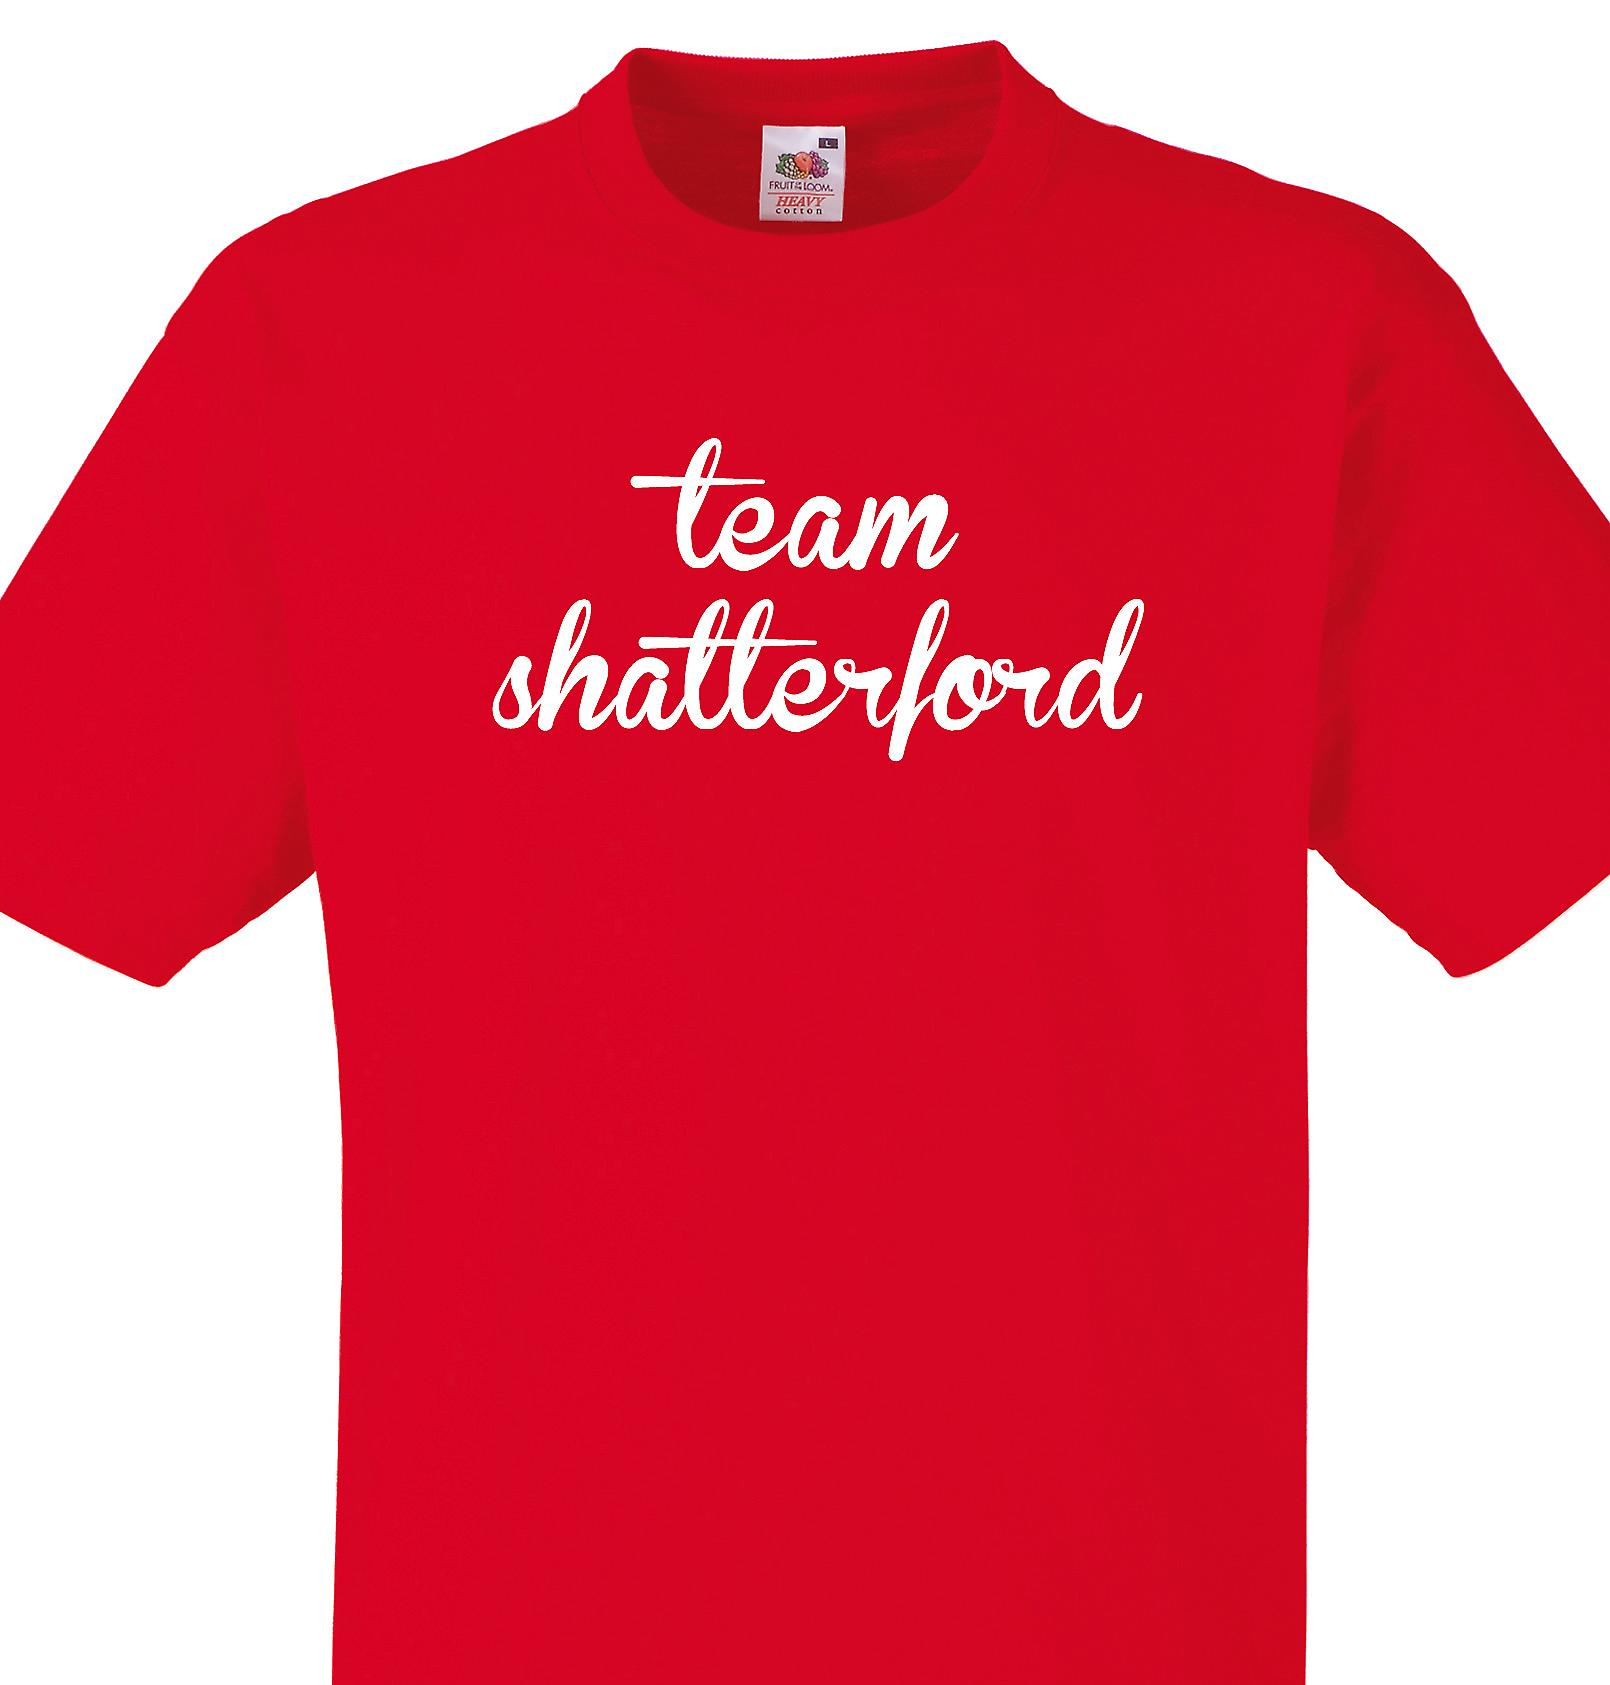 Team Shatterford Red T shirt